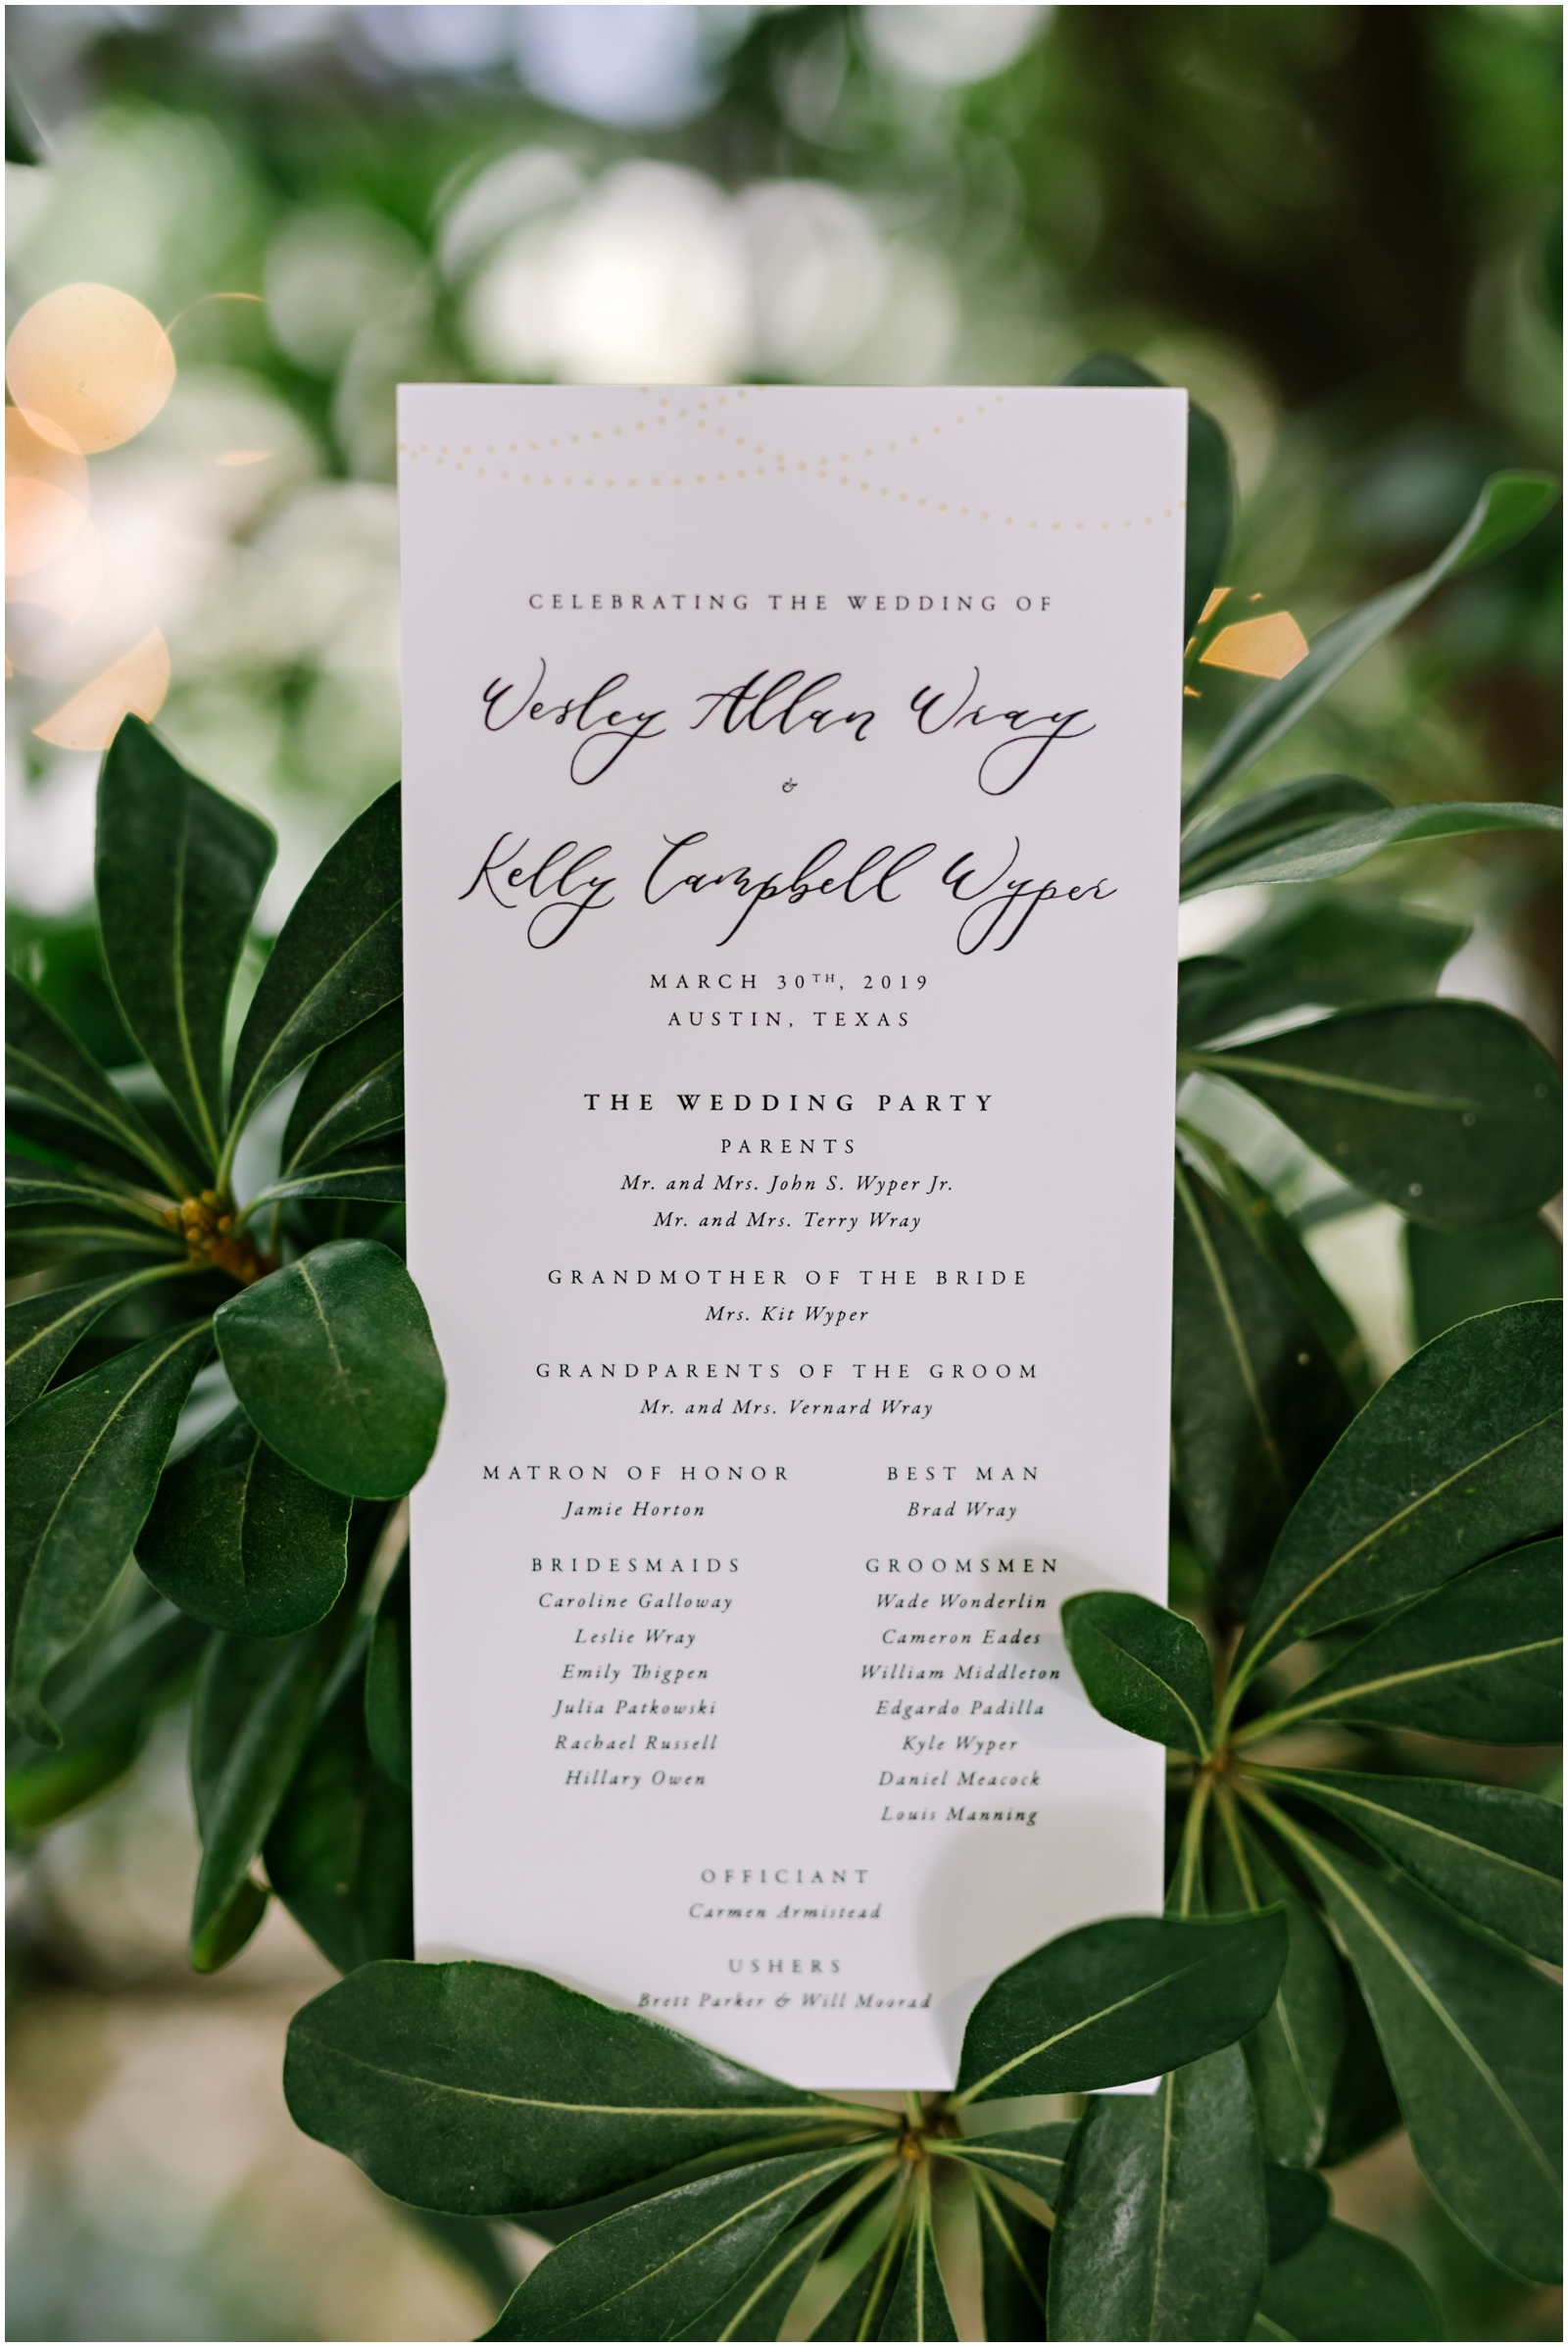 Minimalistic white wedding invitation